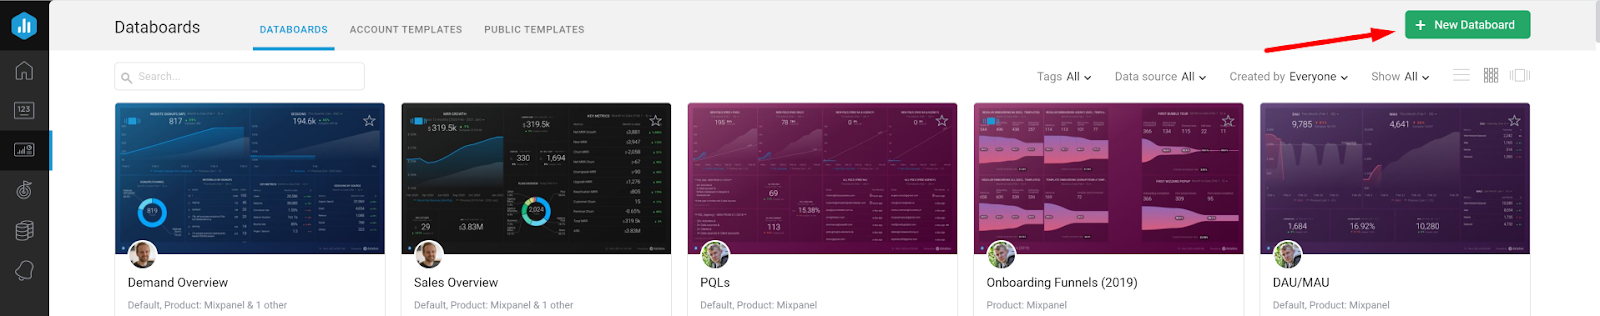 Databox's databoards page